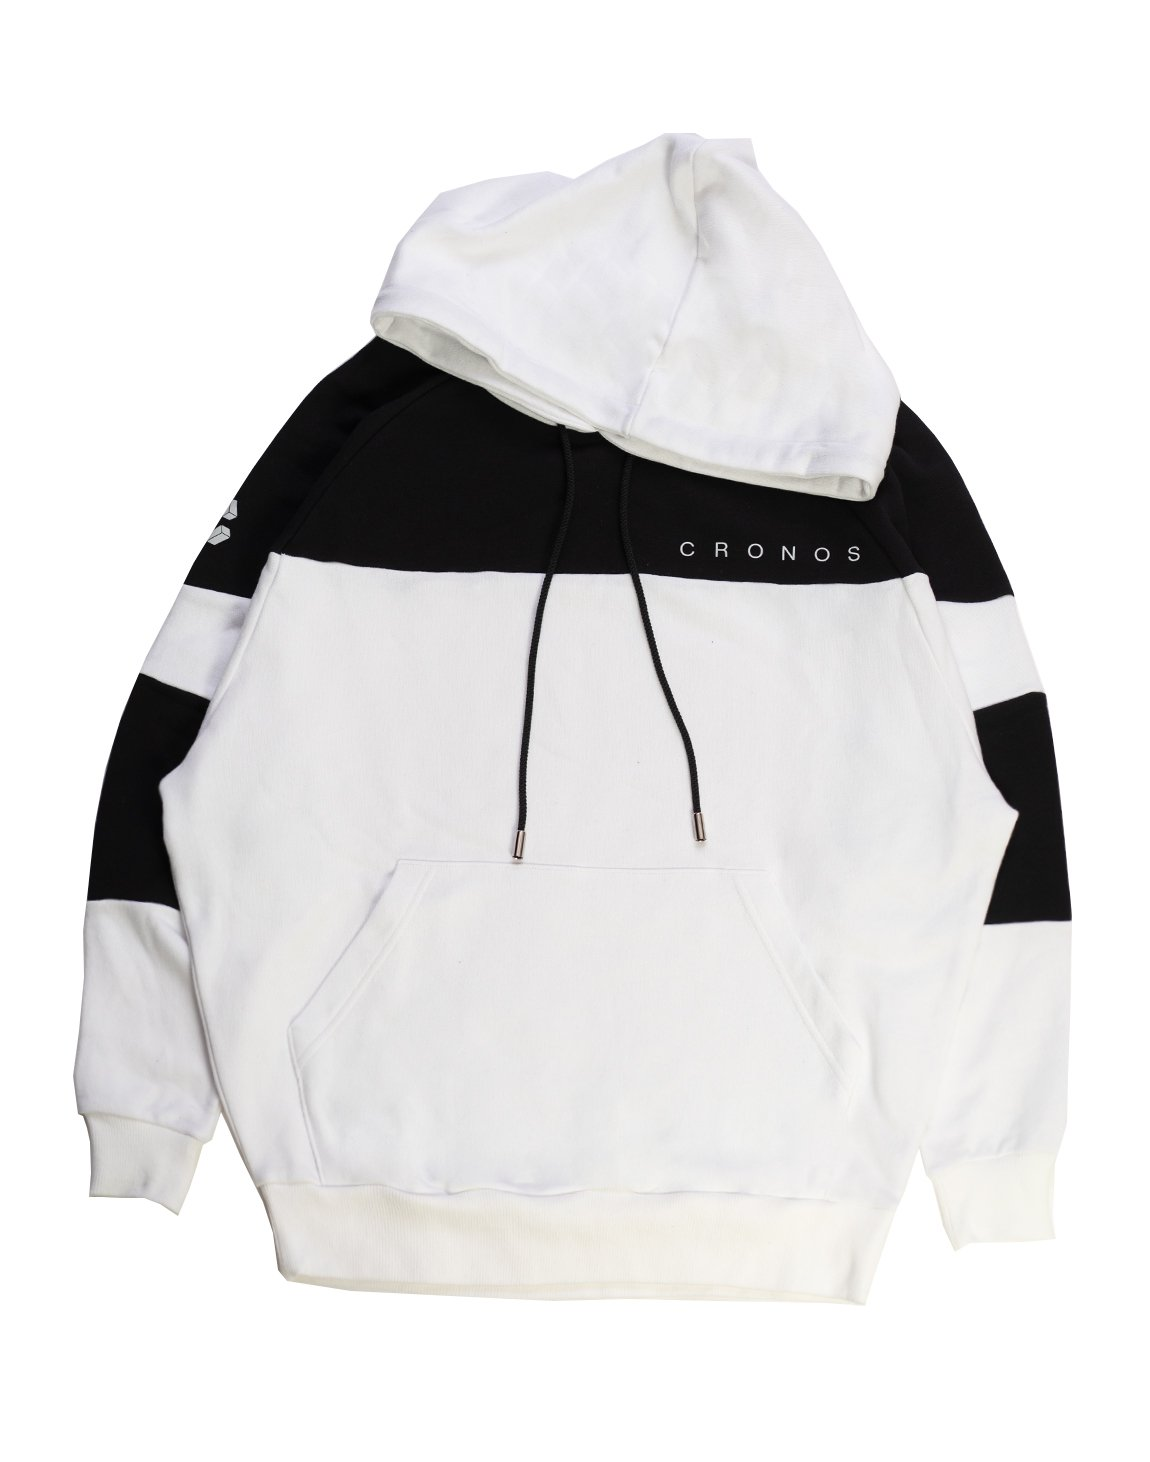 <img class='new_mark_img1' src='https://img.shop-pro.jp/img/new/icons1.gif' style='border:none;display:inline;margin:0px;padding:0px;width:auto;' />CRONOS NEW BICOLOR HOODY【WHITE×BLACK】